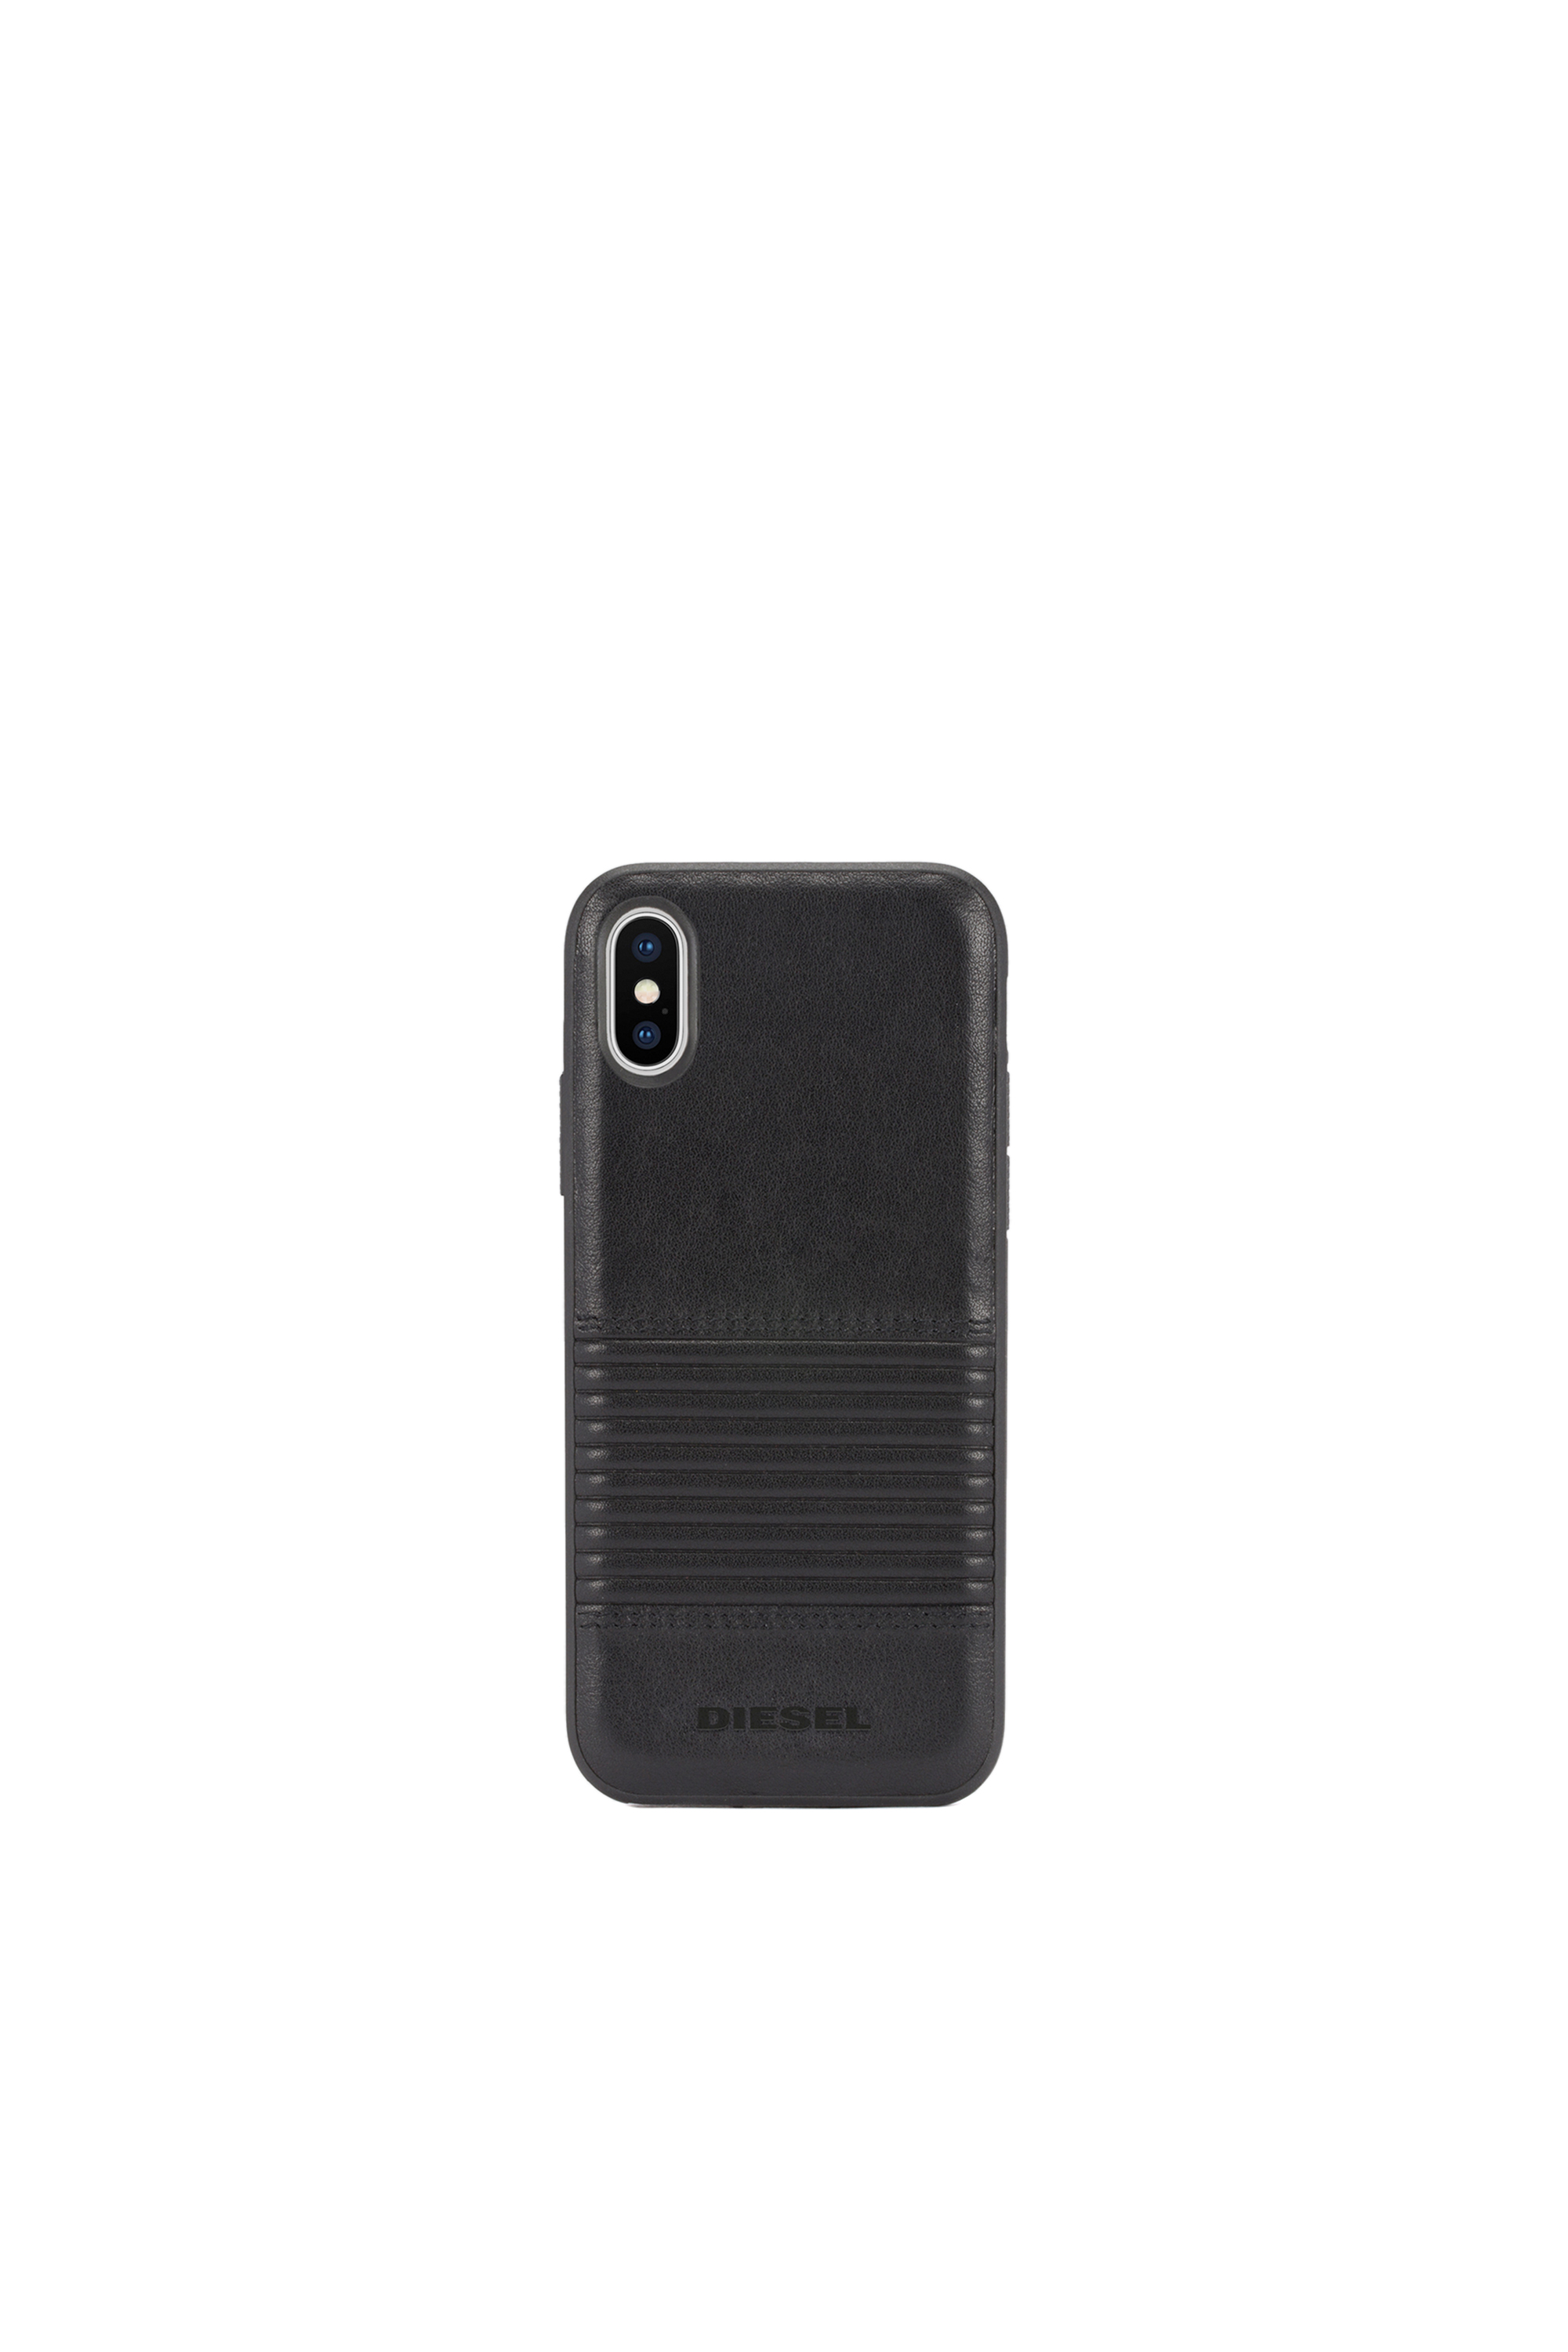 Diesel - BLACK LINED LEATHER IPHONE X CASE,  - Cases - Image 4